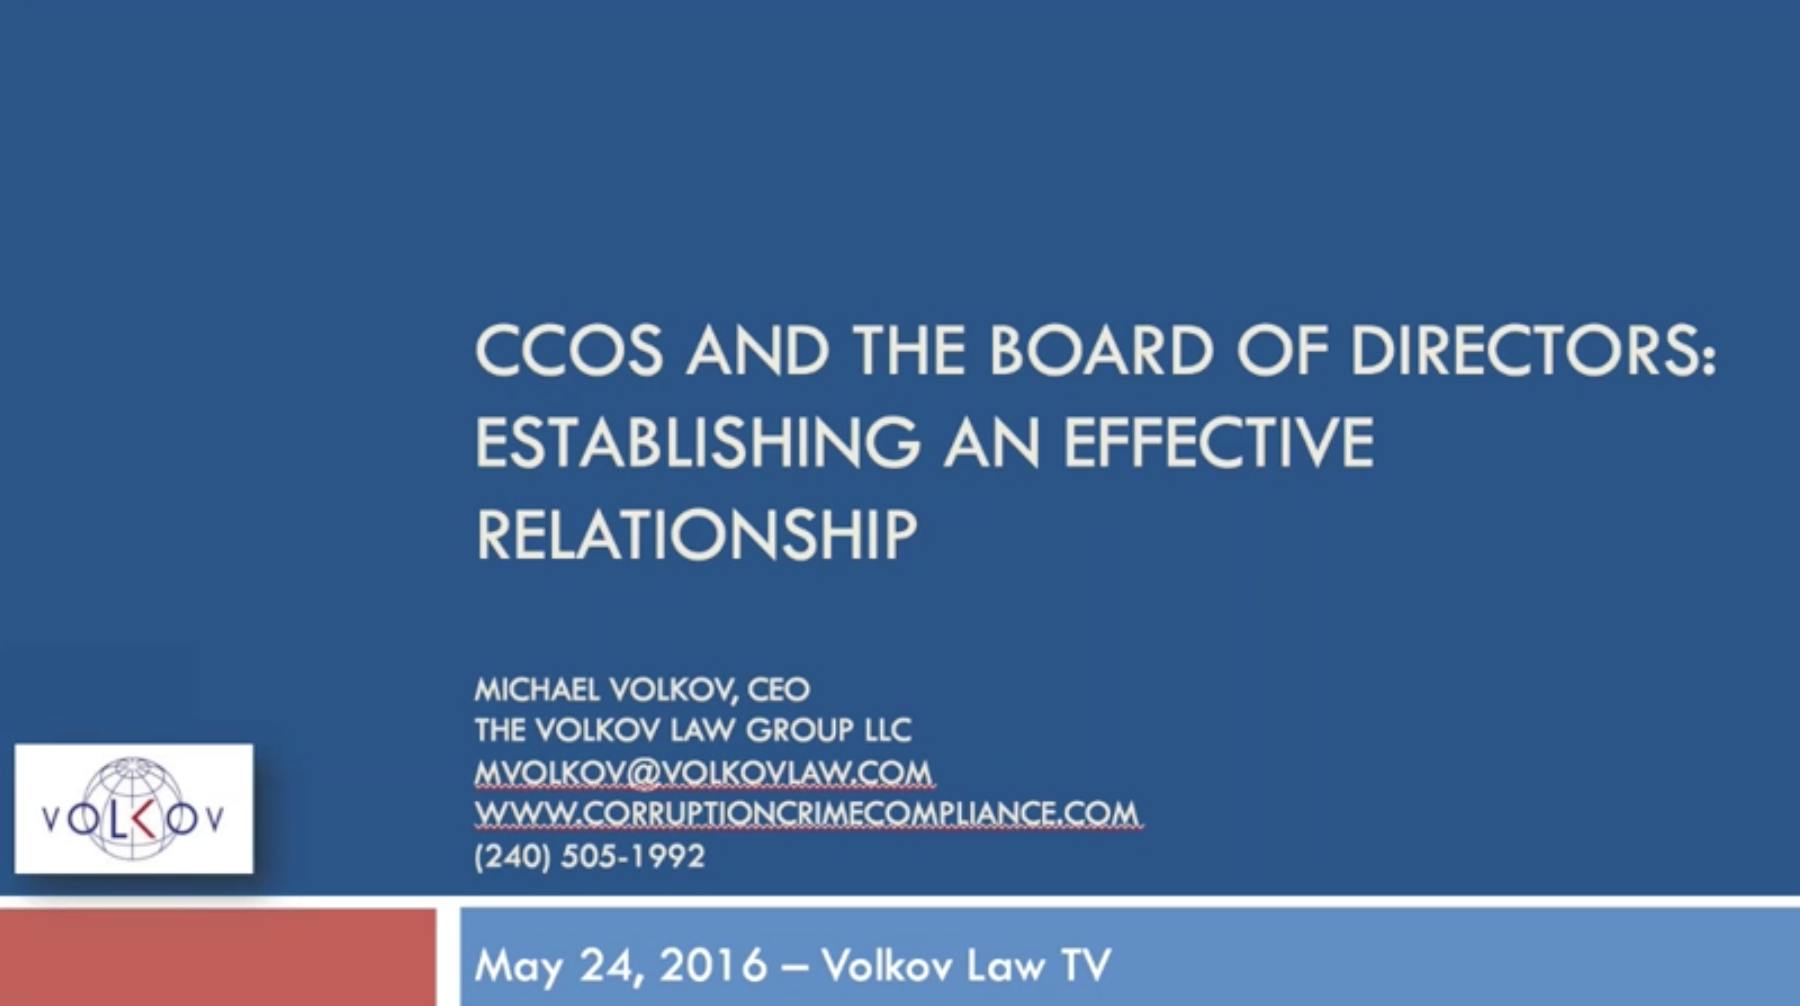 Ccos%20and%20the%20board%20of%20directors%20  %20establishing%20an%20effective%20relationship